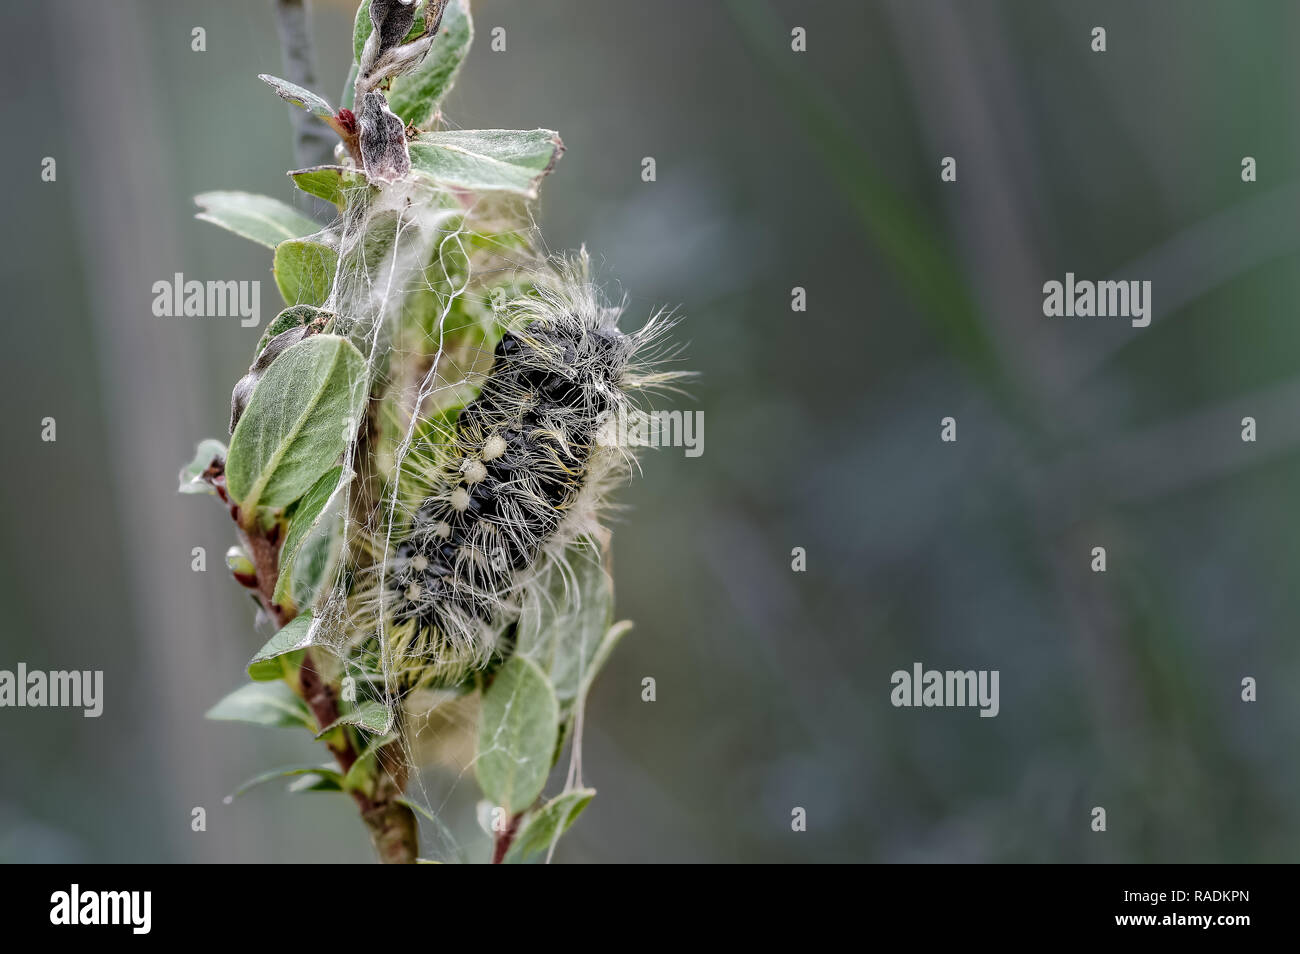 A pupa forms after a fully fed caterpillar enters the pupal stage on dwarf willow at Ainsdale local nature reserve on the Sefton coast. - Stock Image